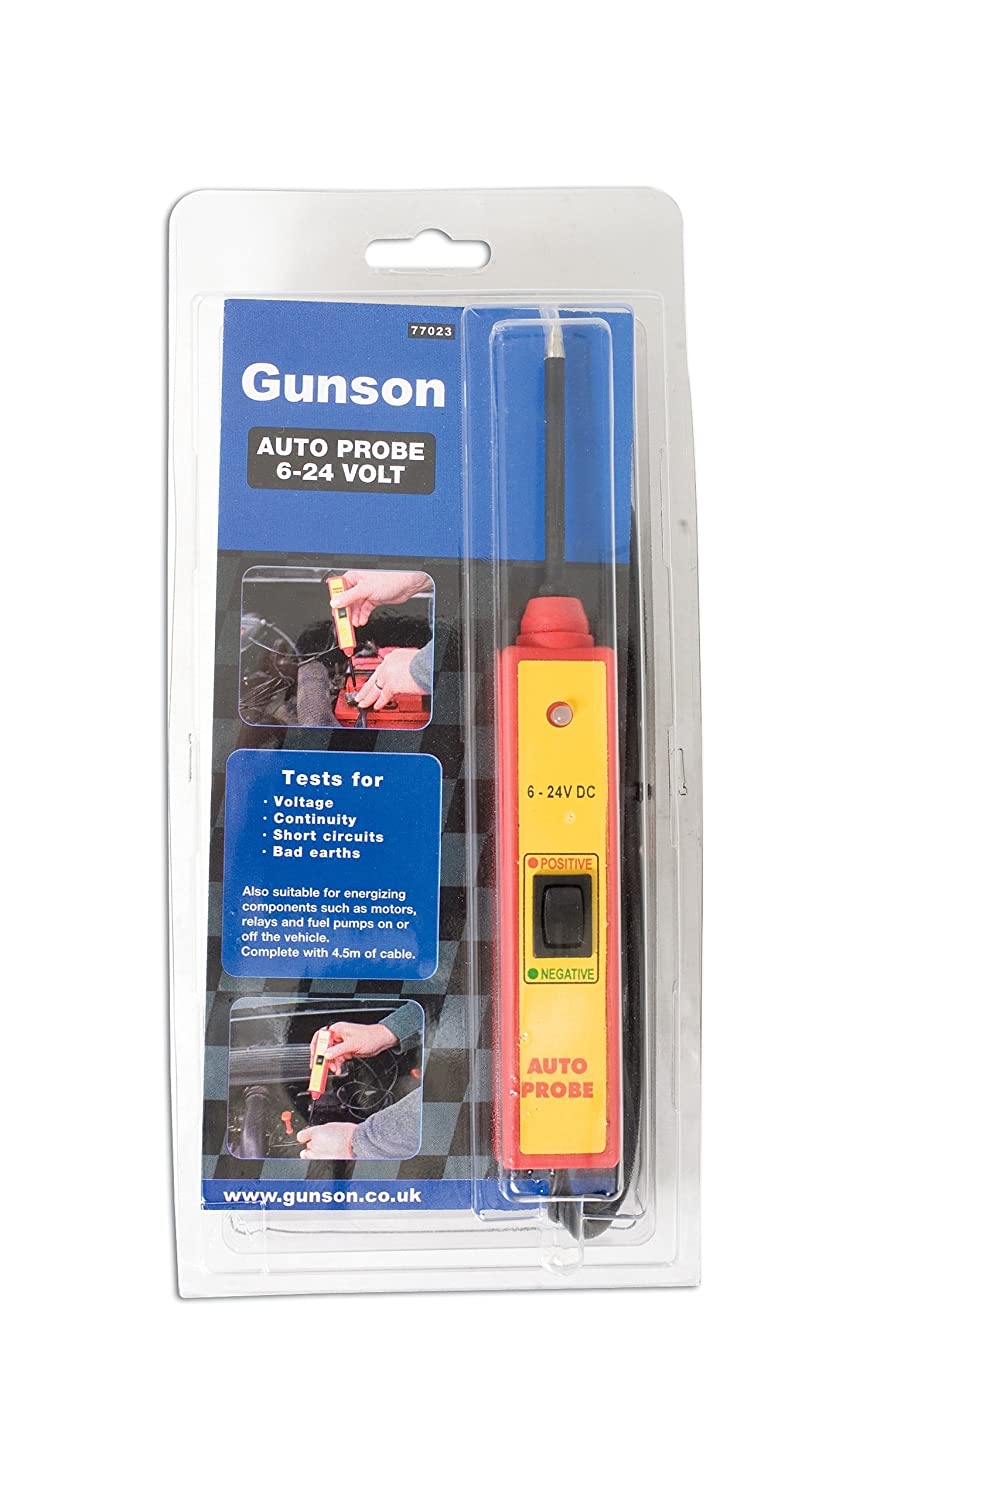 Gunson 77023 Auto Probe 6 24 Volt Car Motorbike Details About Sealey Pp1 12v Electrical Circuit Tester